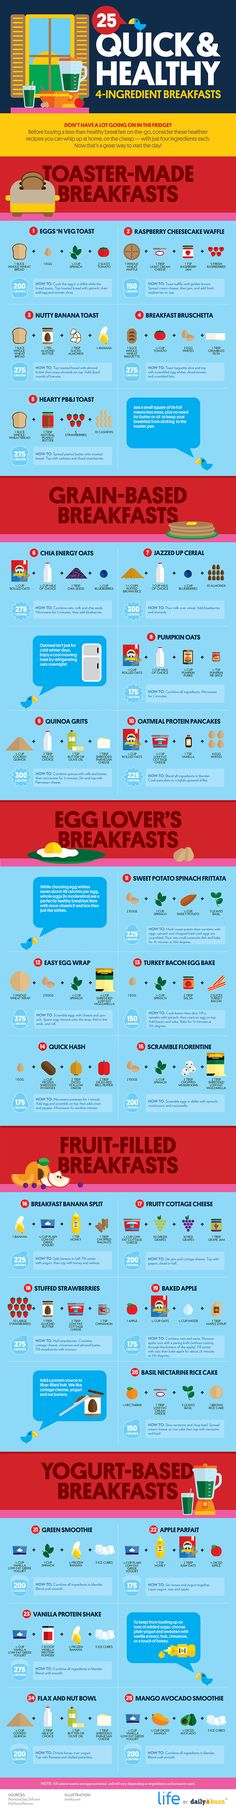 25 Quick and Healthy 4-Ingredient Breakfasts #INFOGRAPHIC via Life by @DailyBurn